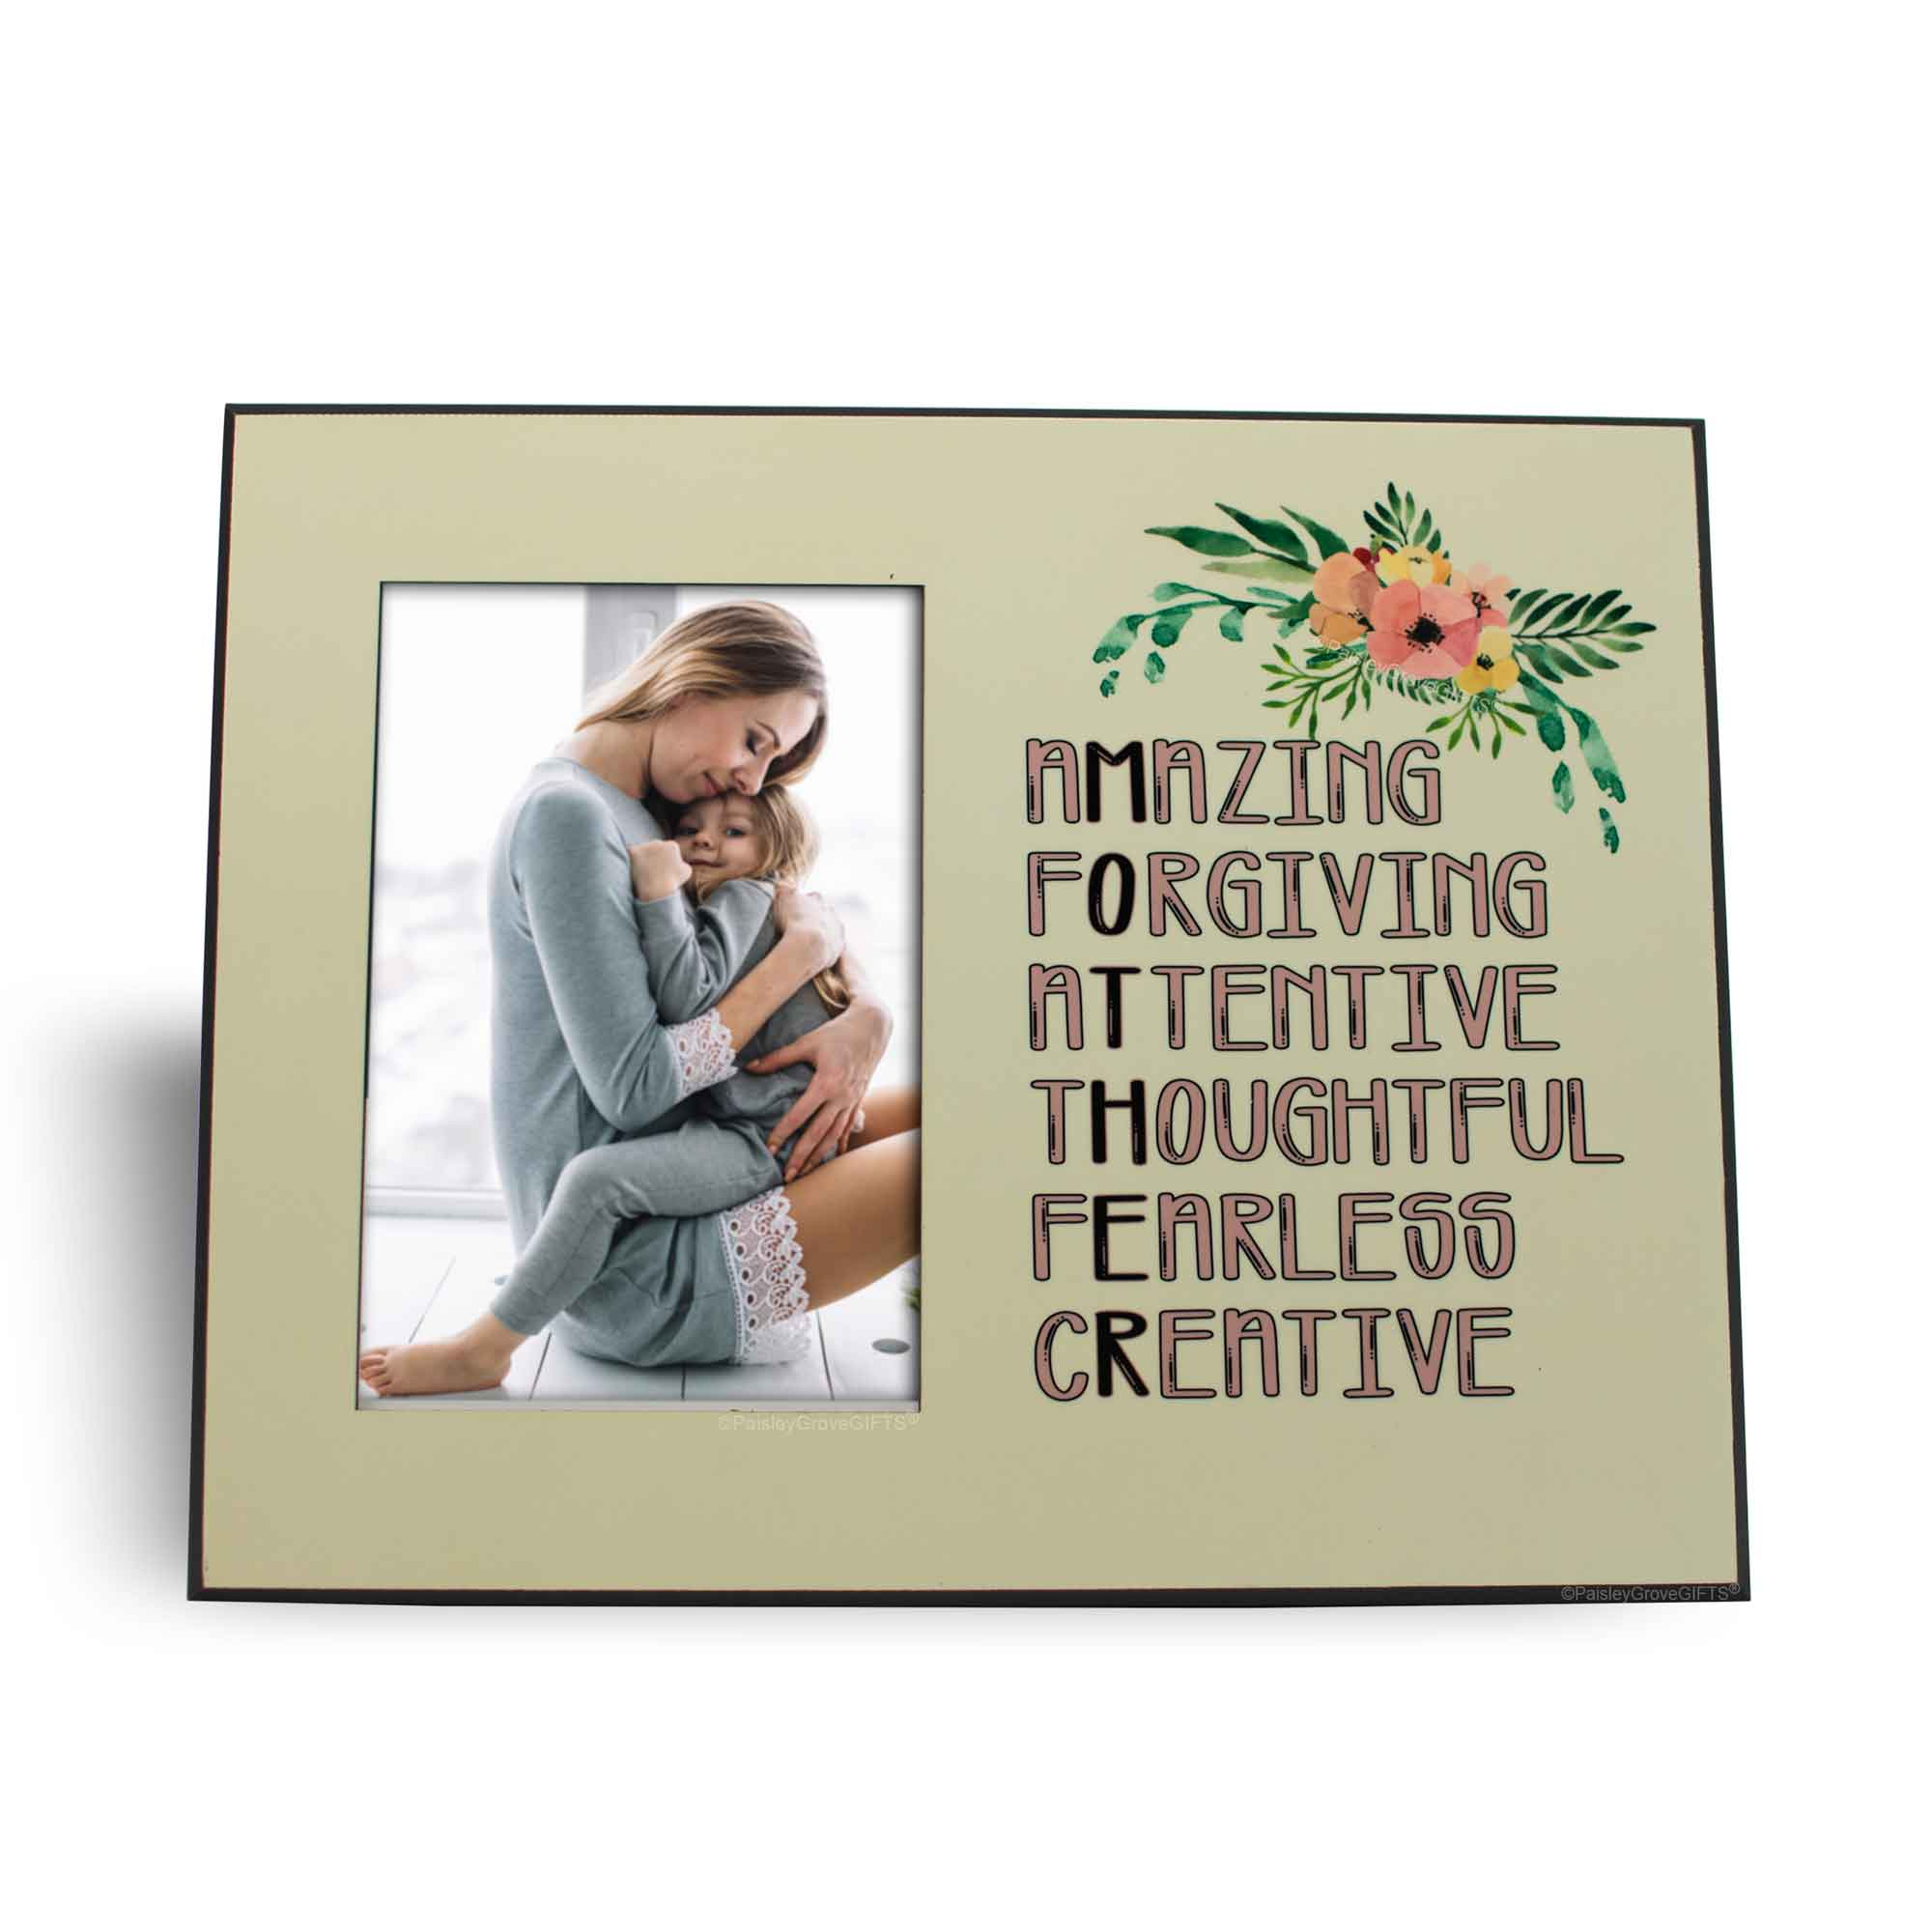 CopyrightPaisleyGroveGIFTS S202b MOTHER Acronym Amazing Forgiving Attentive Thoughtful Fearless and Creative on Frame